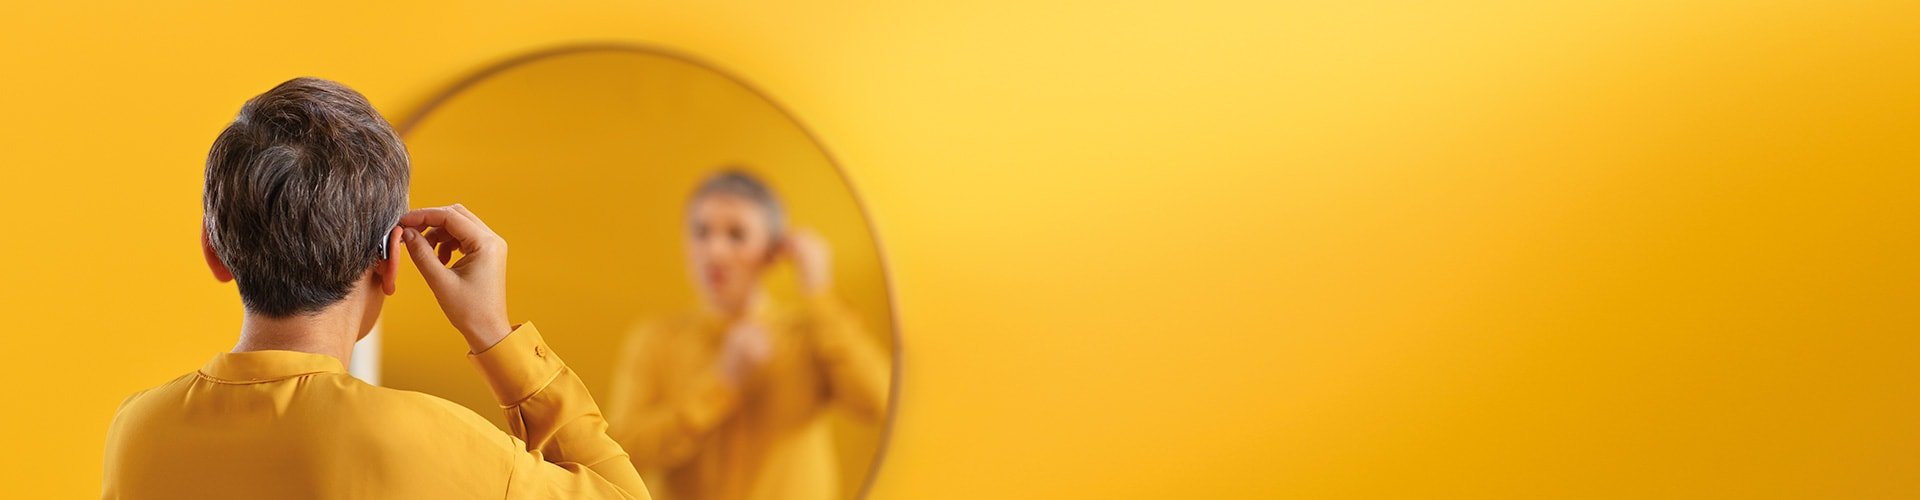 Woman is putting on her Philips hearing aid. Philips HearLink comes in a range of hearing aid types.